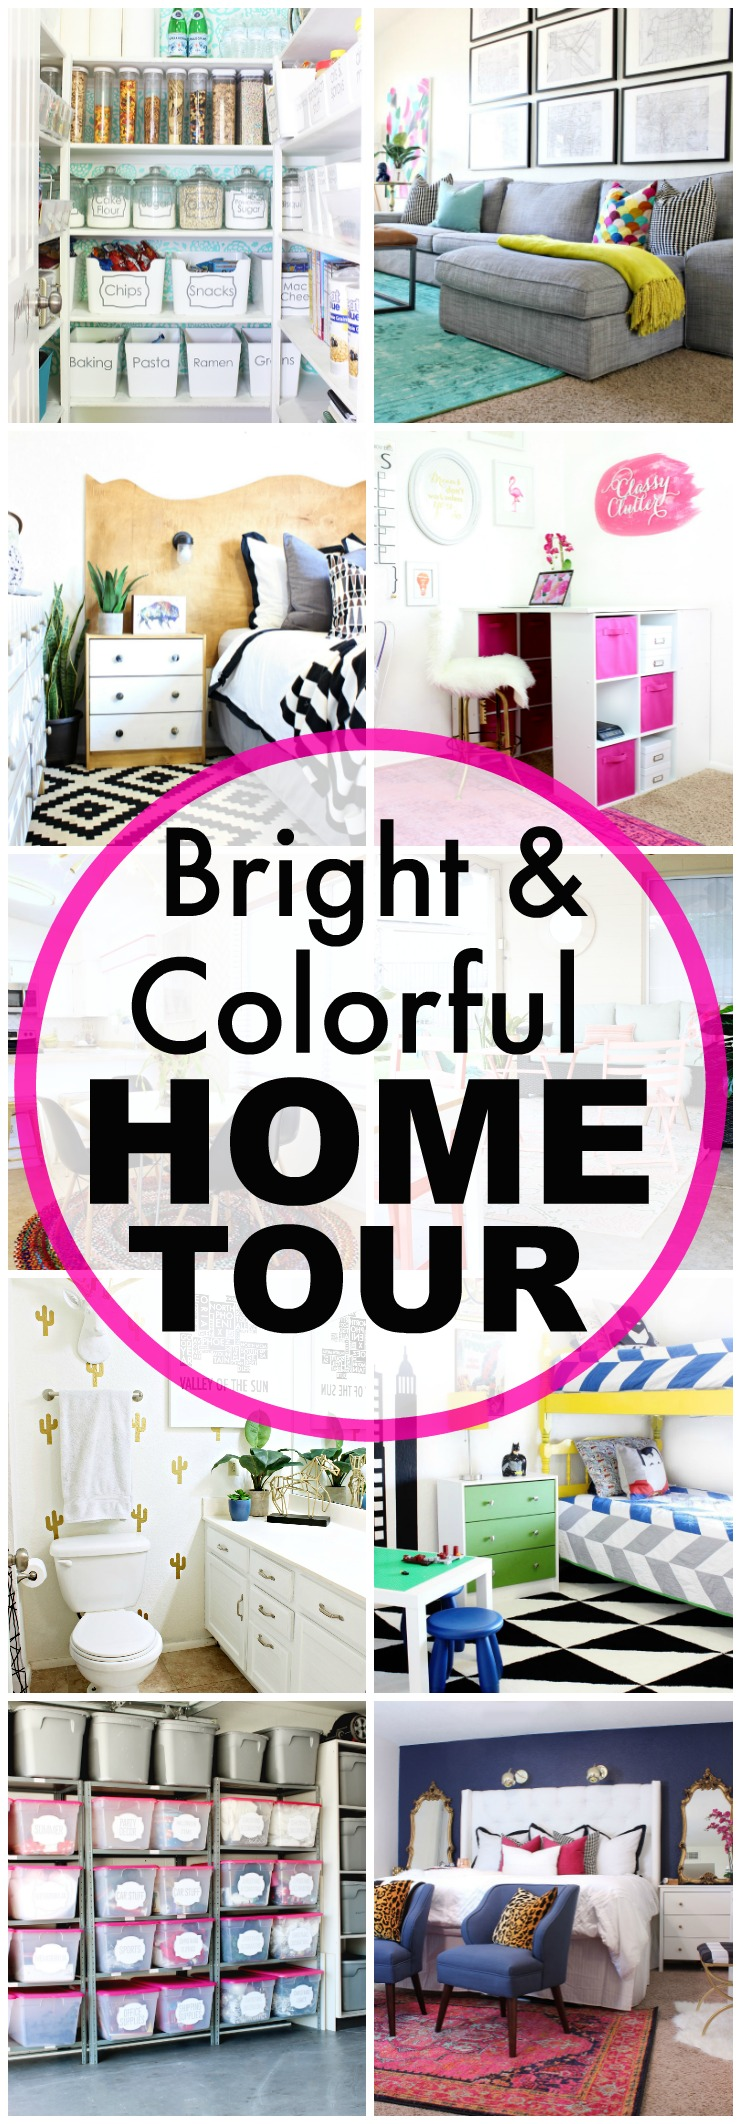 Bright and Colorful Home Tour - www.classyclutter.net